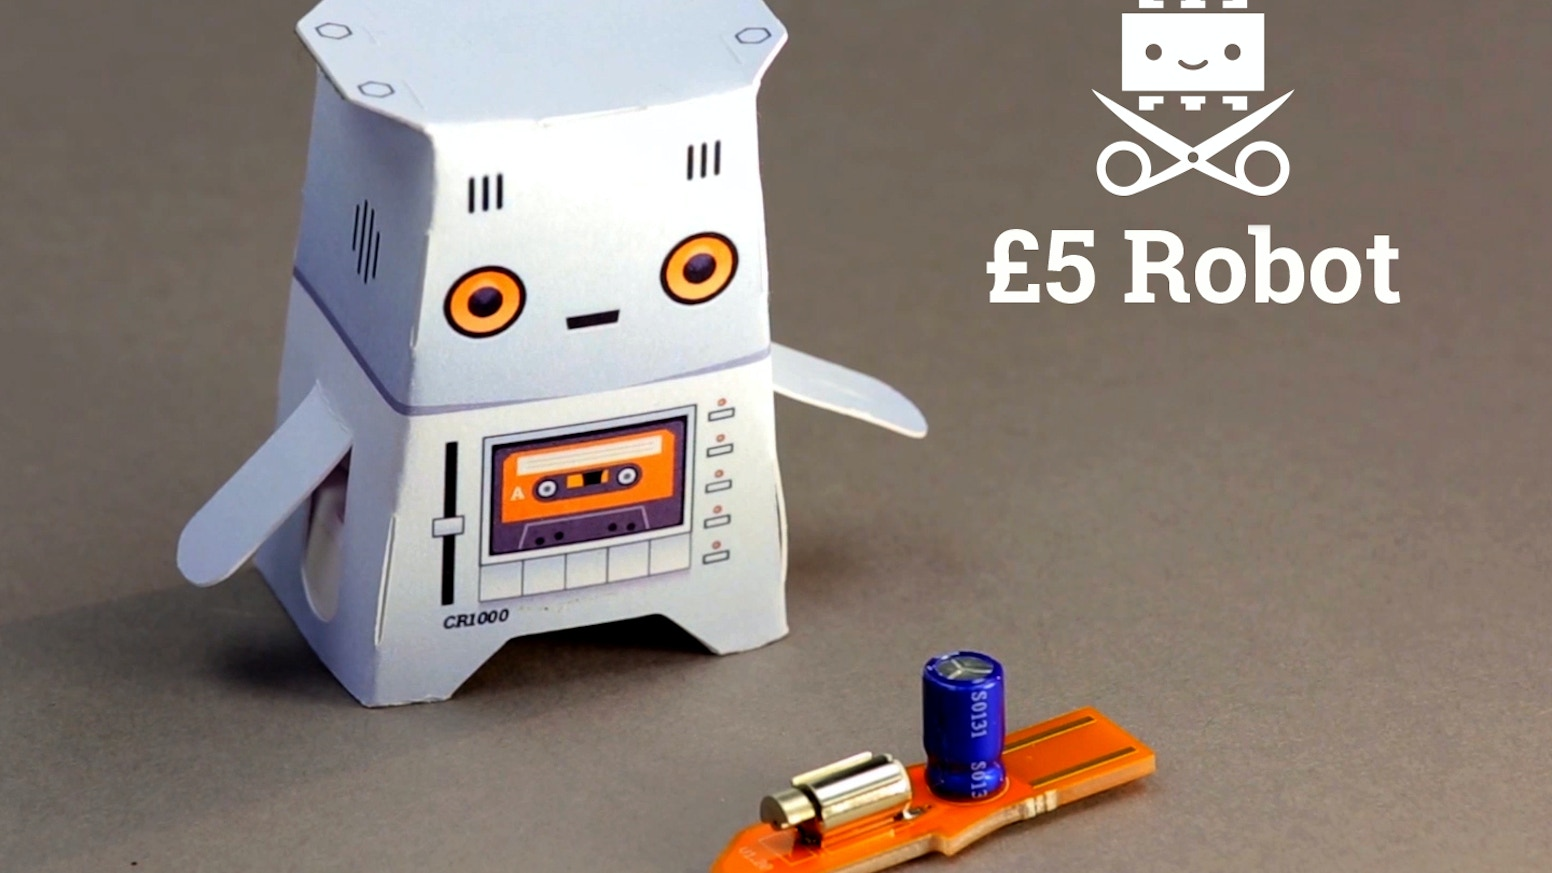 Your own robot for only £5! 100% battery free and the basis for infinite figures of your own invention. Turn anything into a Robot!